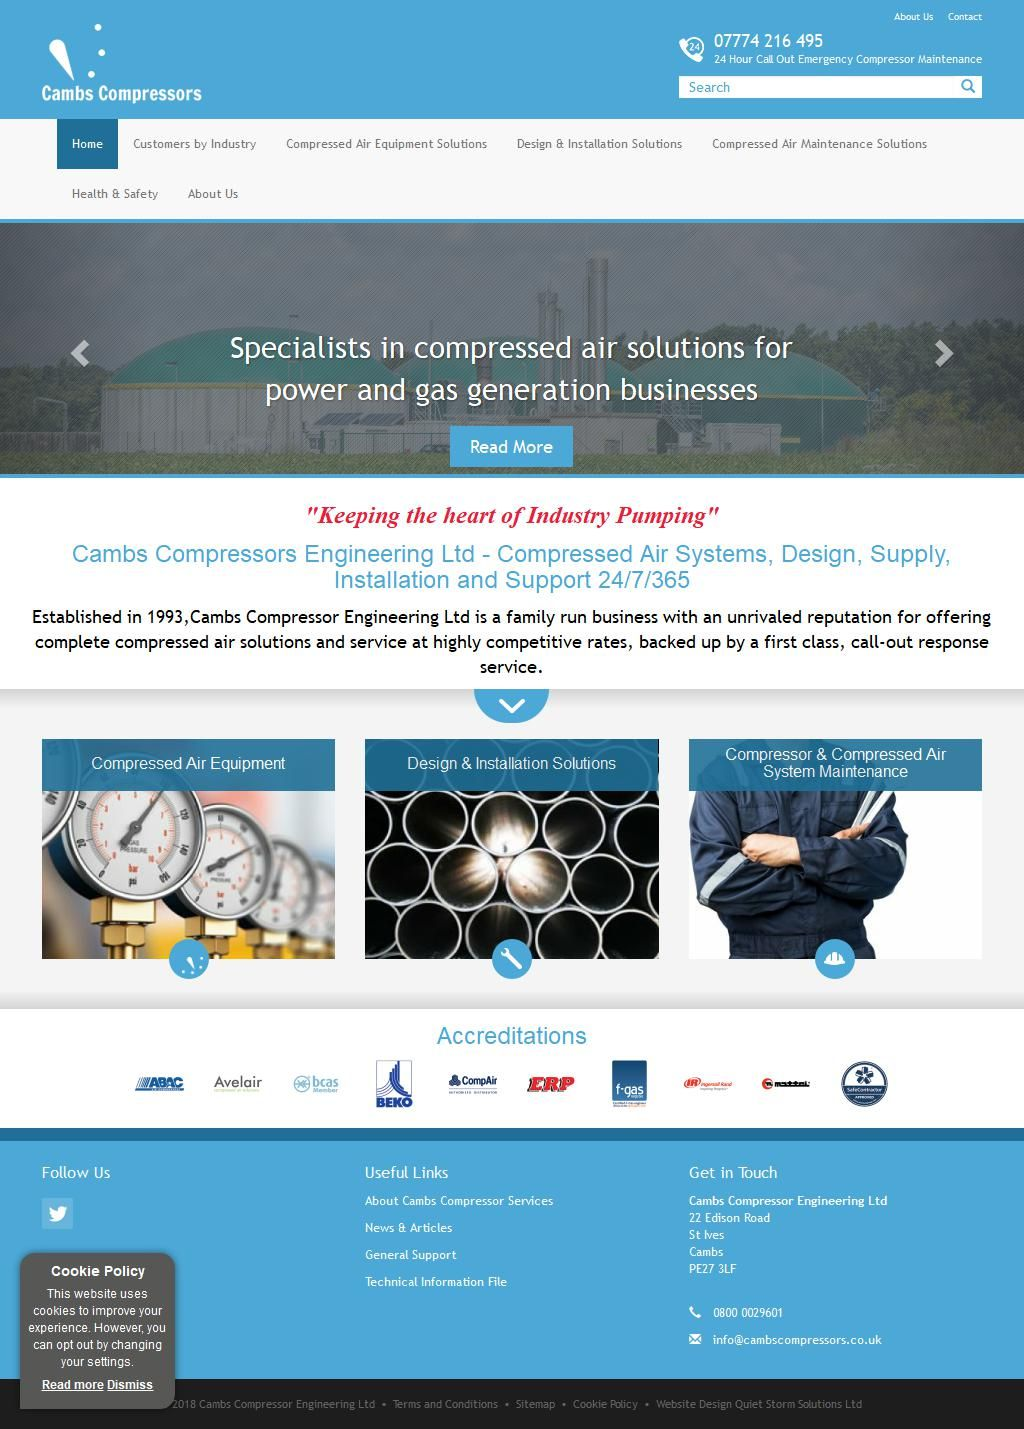 Cambs Compressor Engineering Ltd Air Conditioning Services